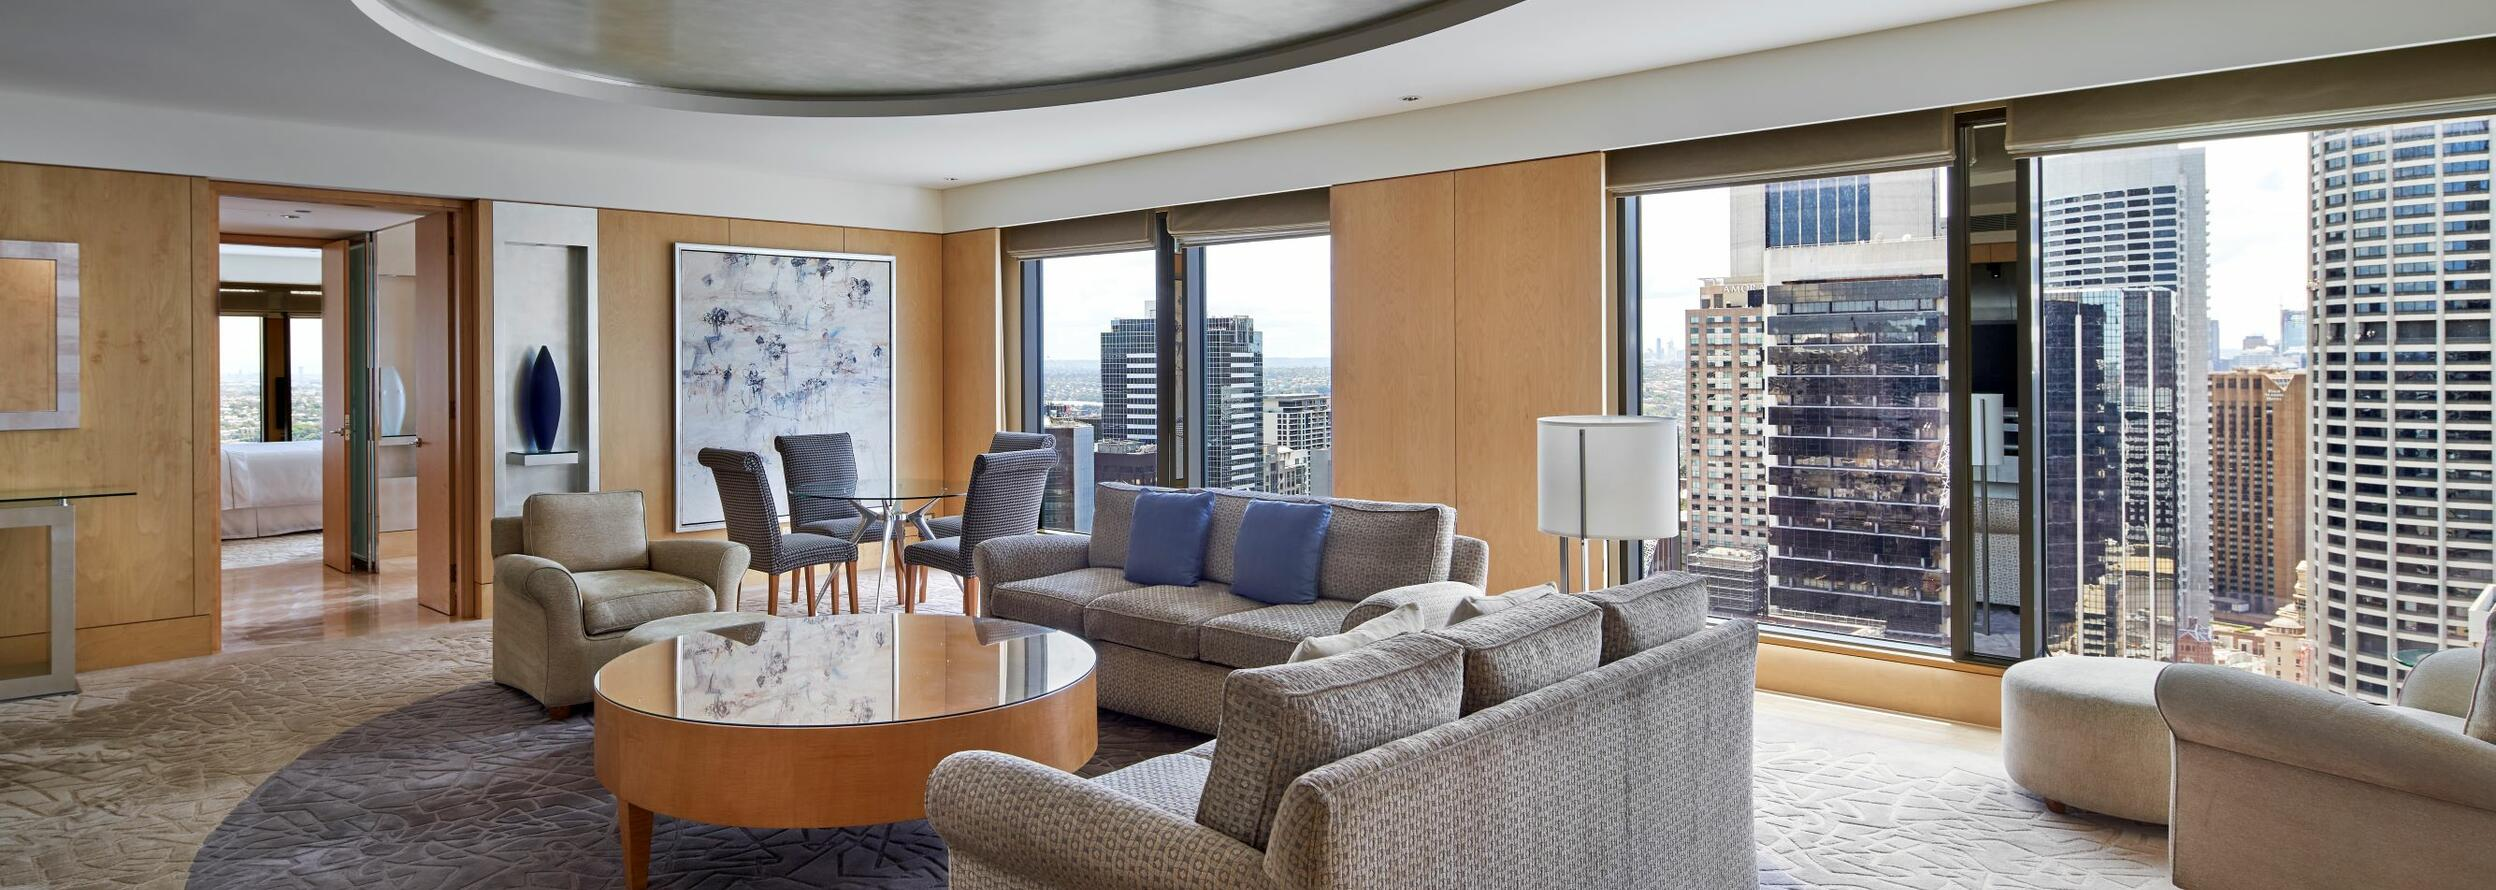 The living area in the Martin Place Suite at the hotel